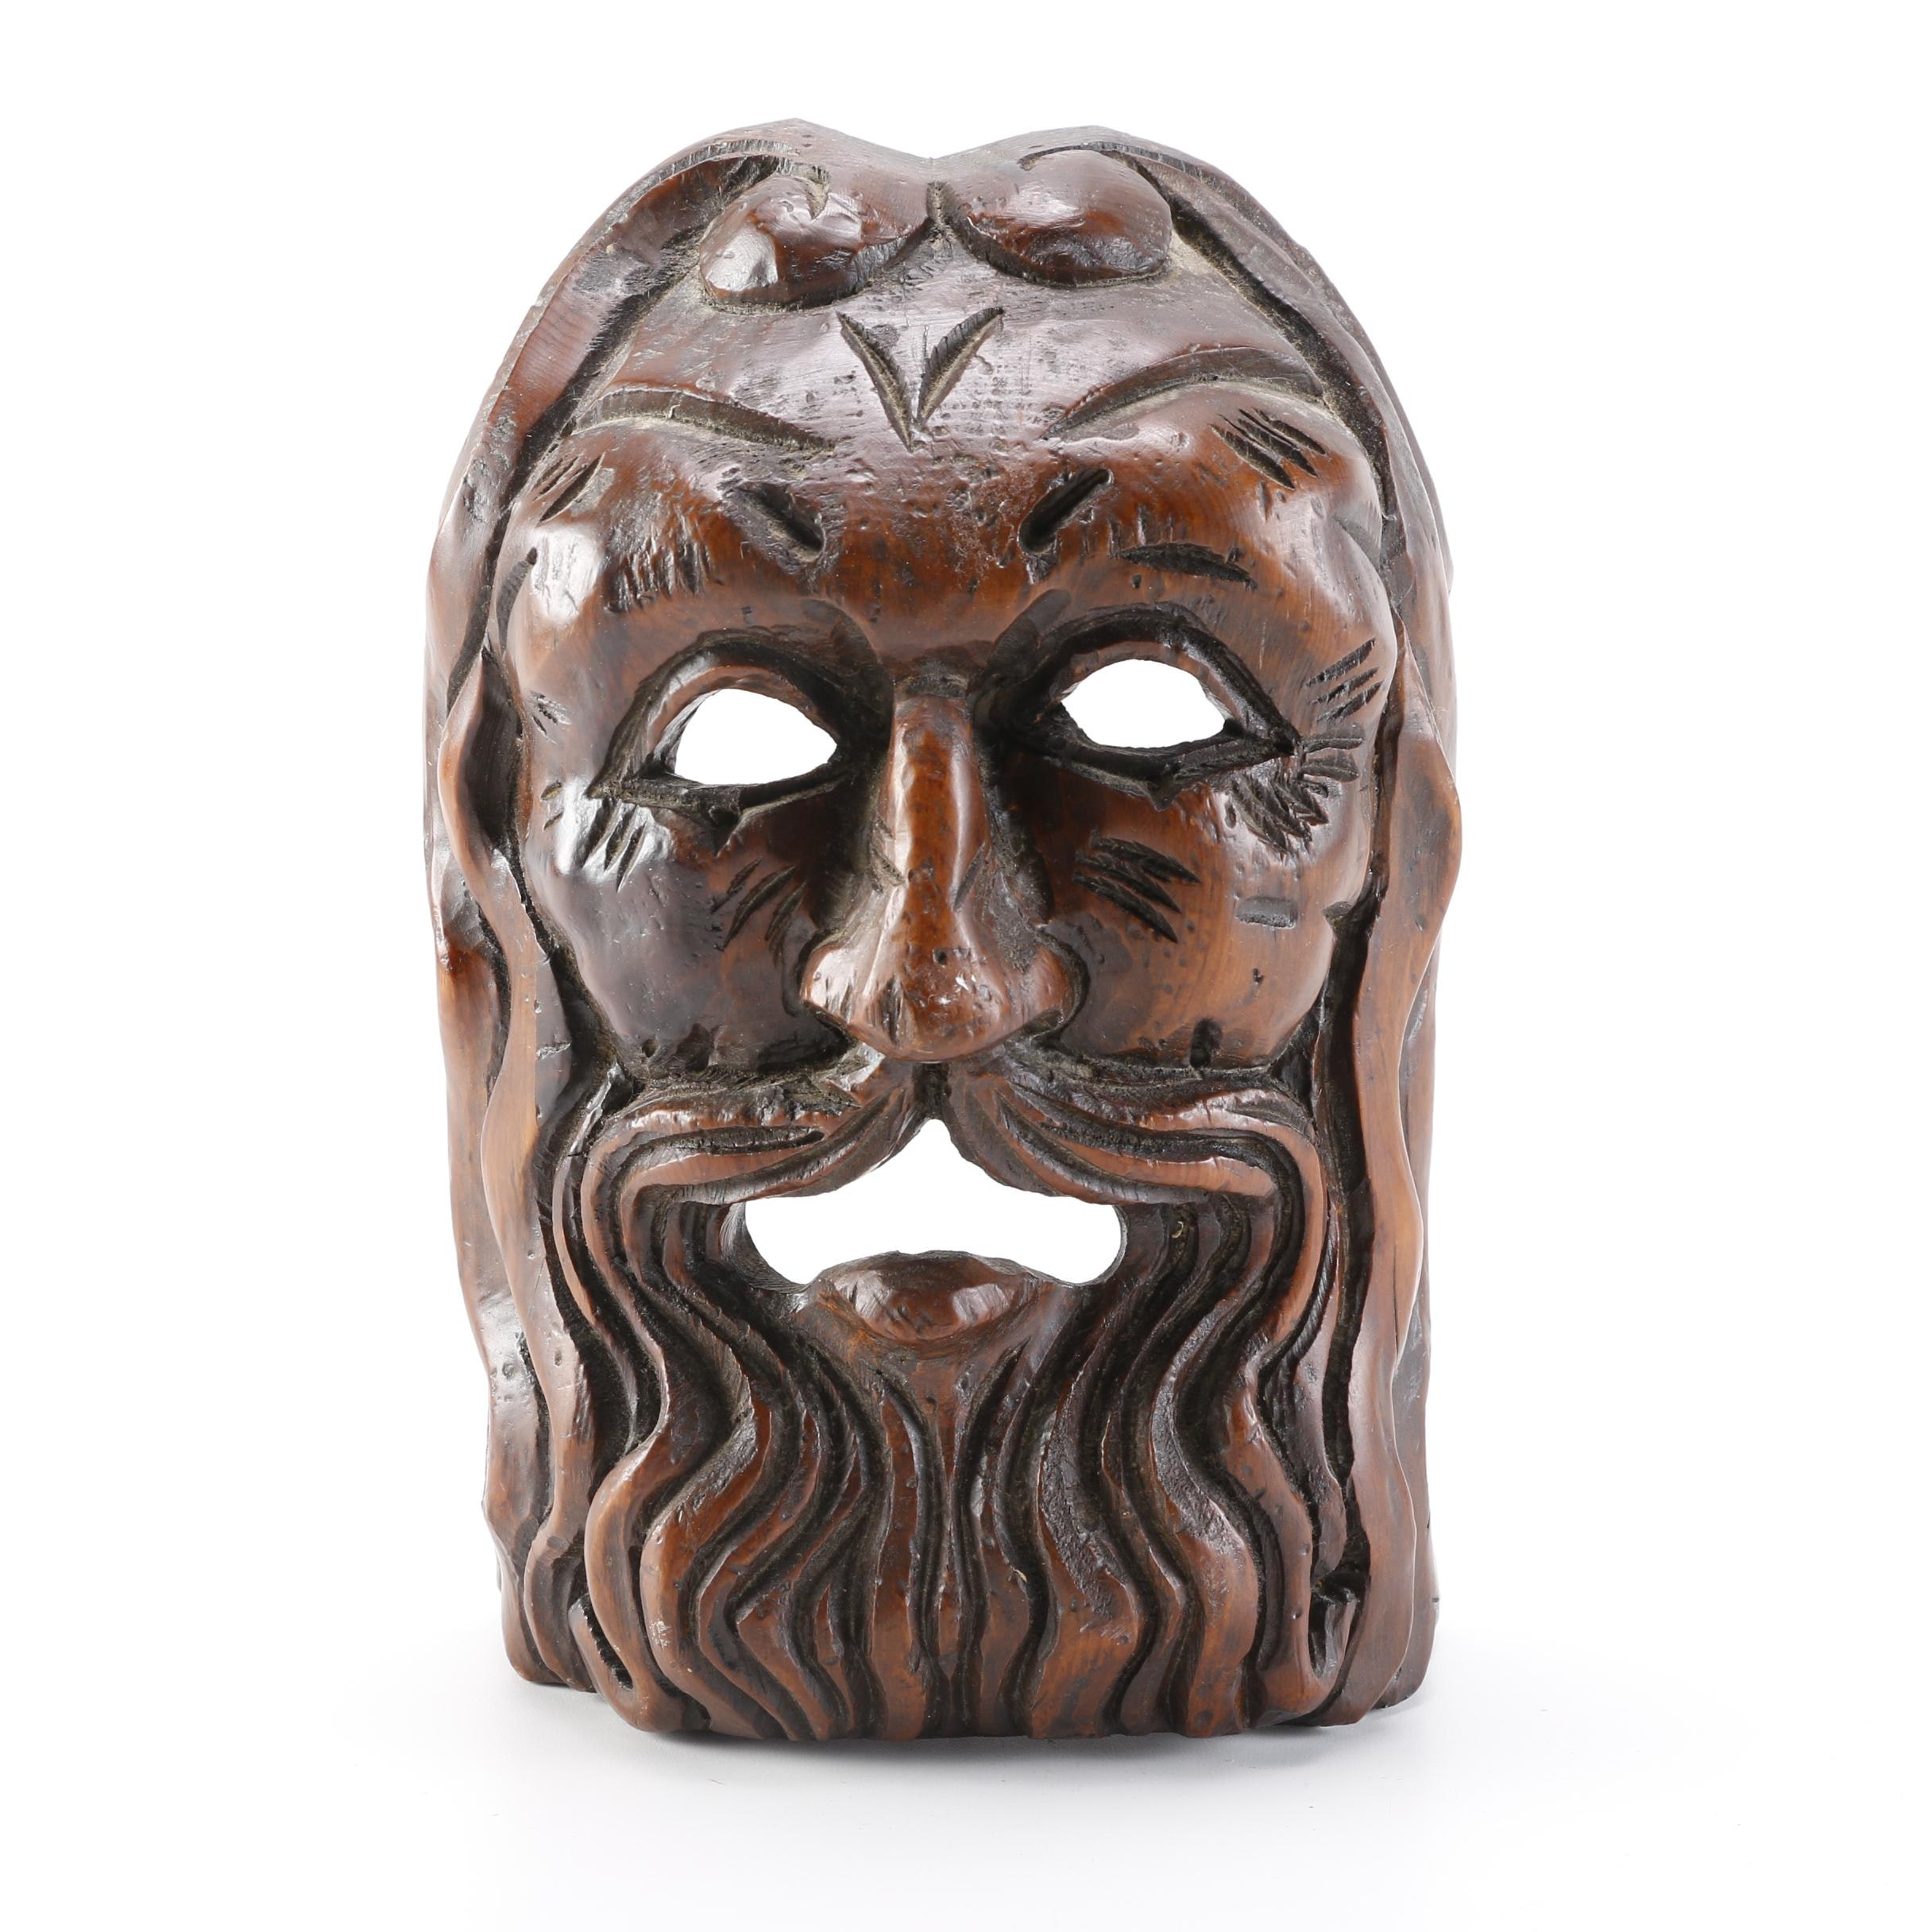 Spanish Hand Carved Wood Mask